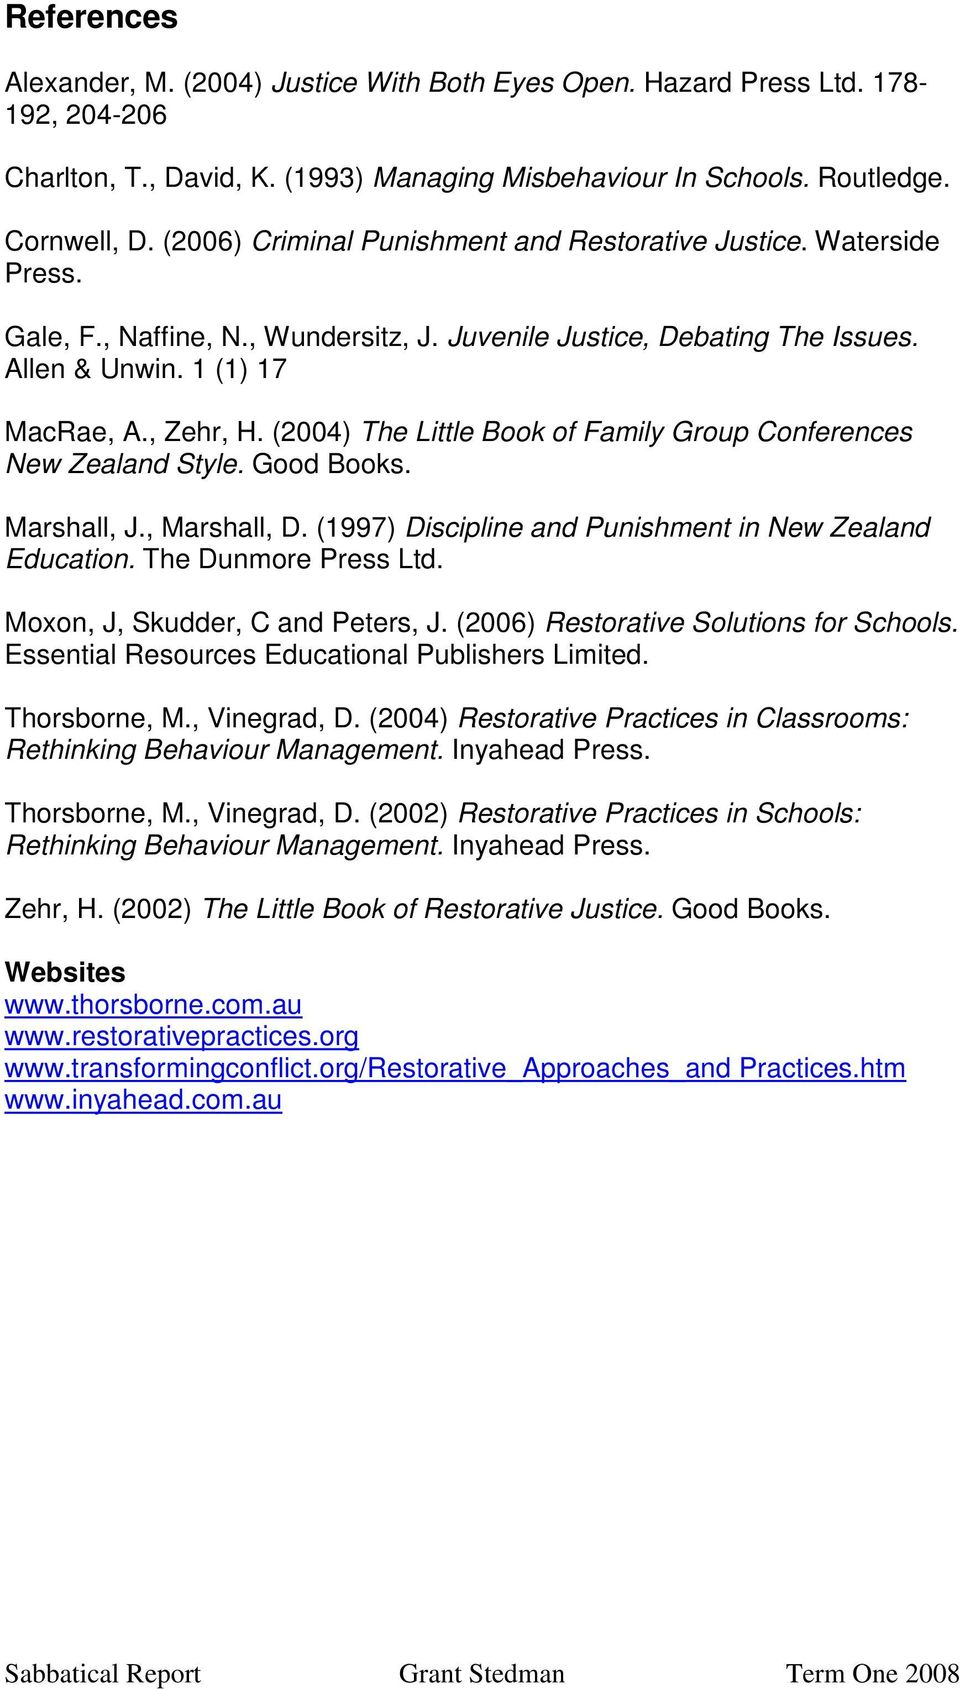 (2004) The Little Book of Family Group Conferences New Zealand Style. Good Books. Marshall, J., Marshall, D. (1997) Discipline and Punishment in New Zealand Education. The Dunmore Press Ltd.